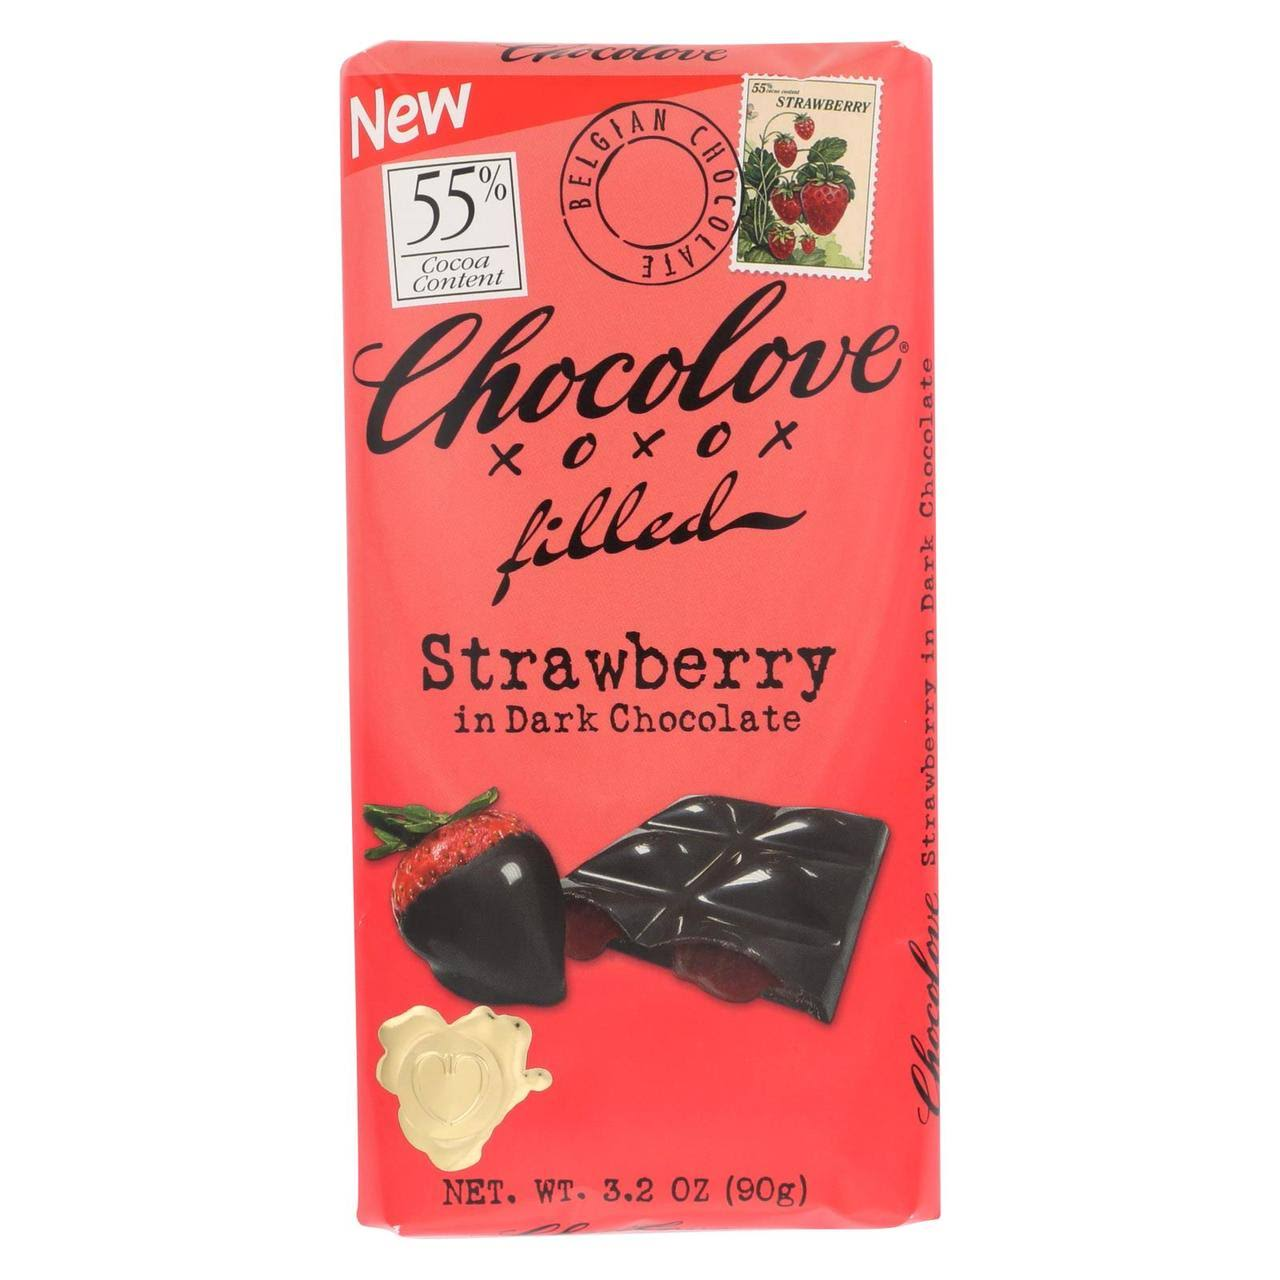 Chocolove Chocolate, Dark, Strawberry, Filled, 55% Cocoa - 3.2 oz